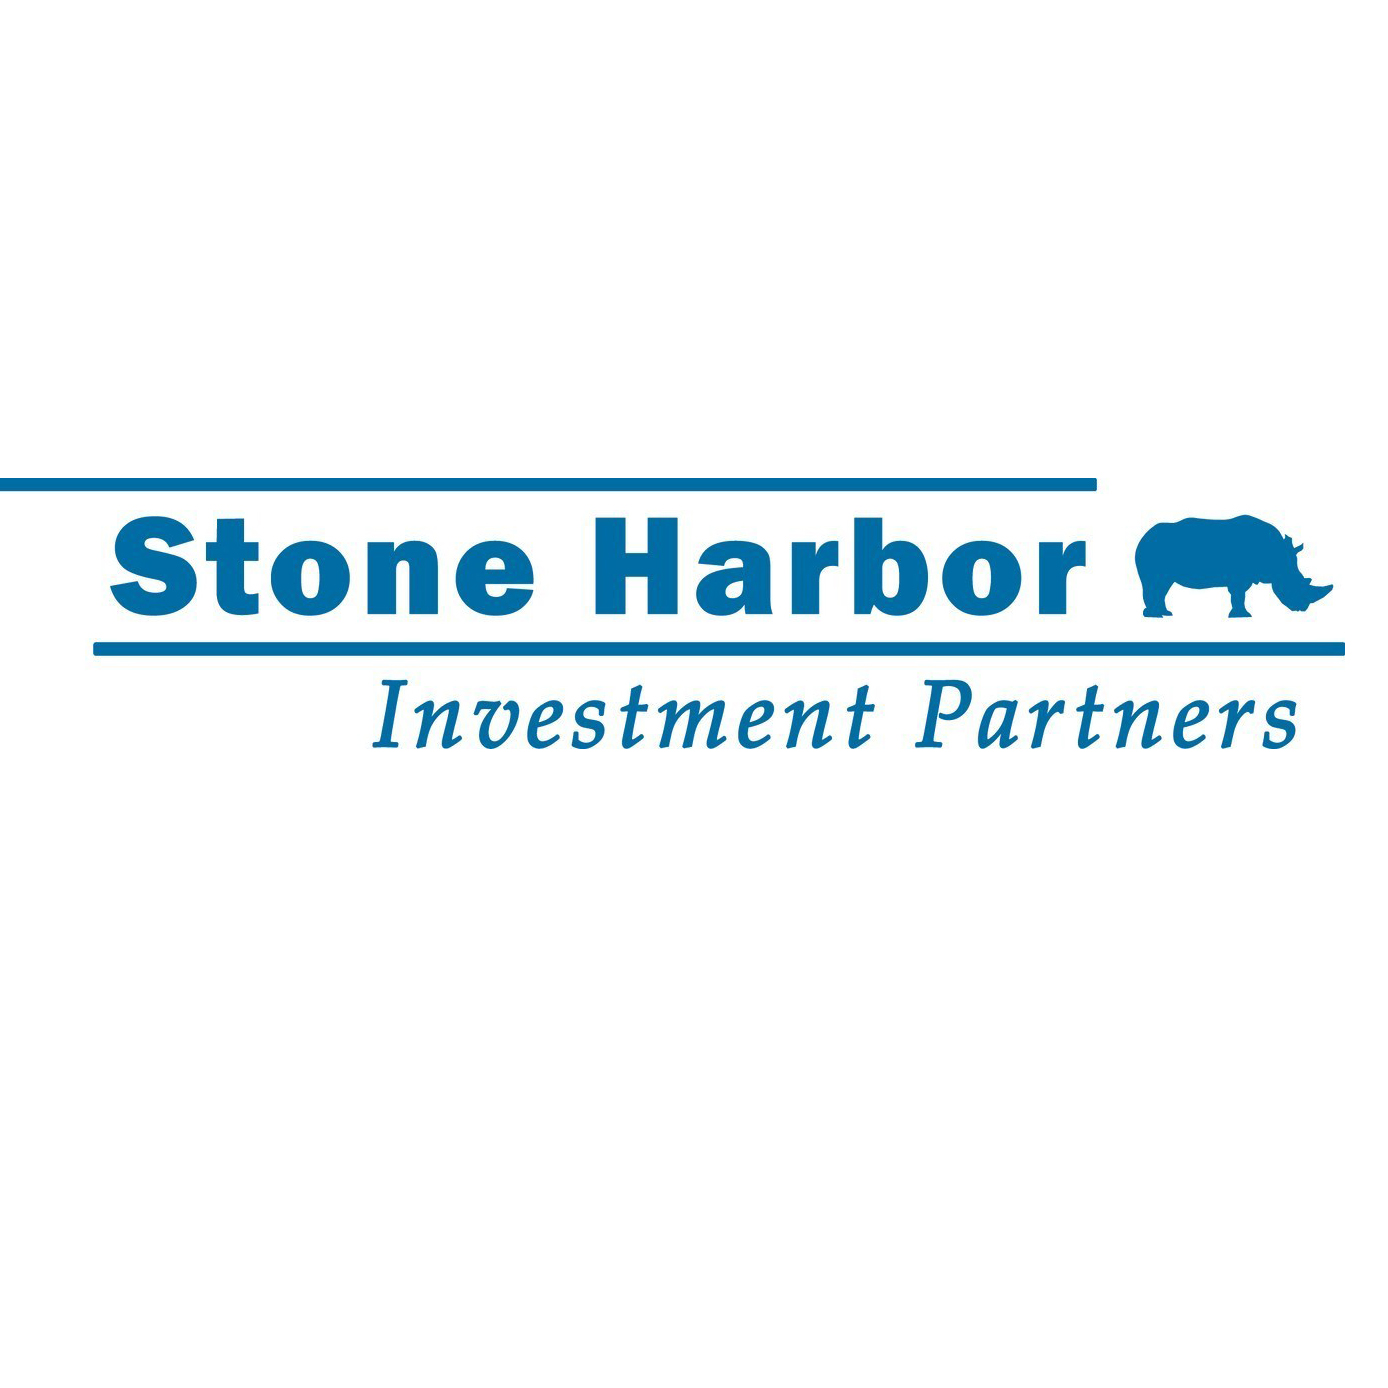 Stone Harbor Investment Partners